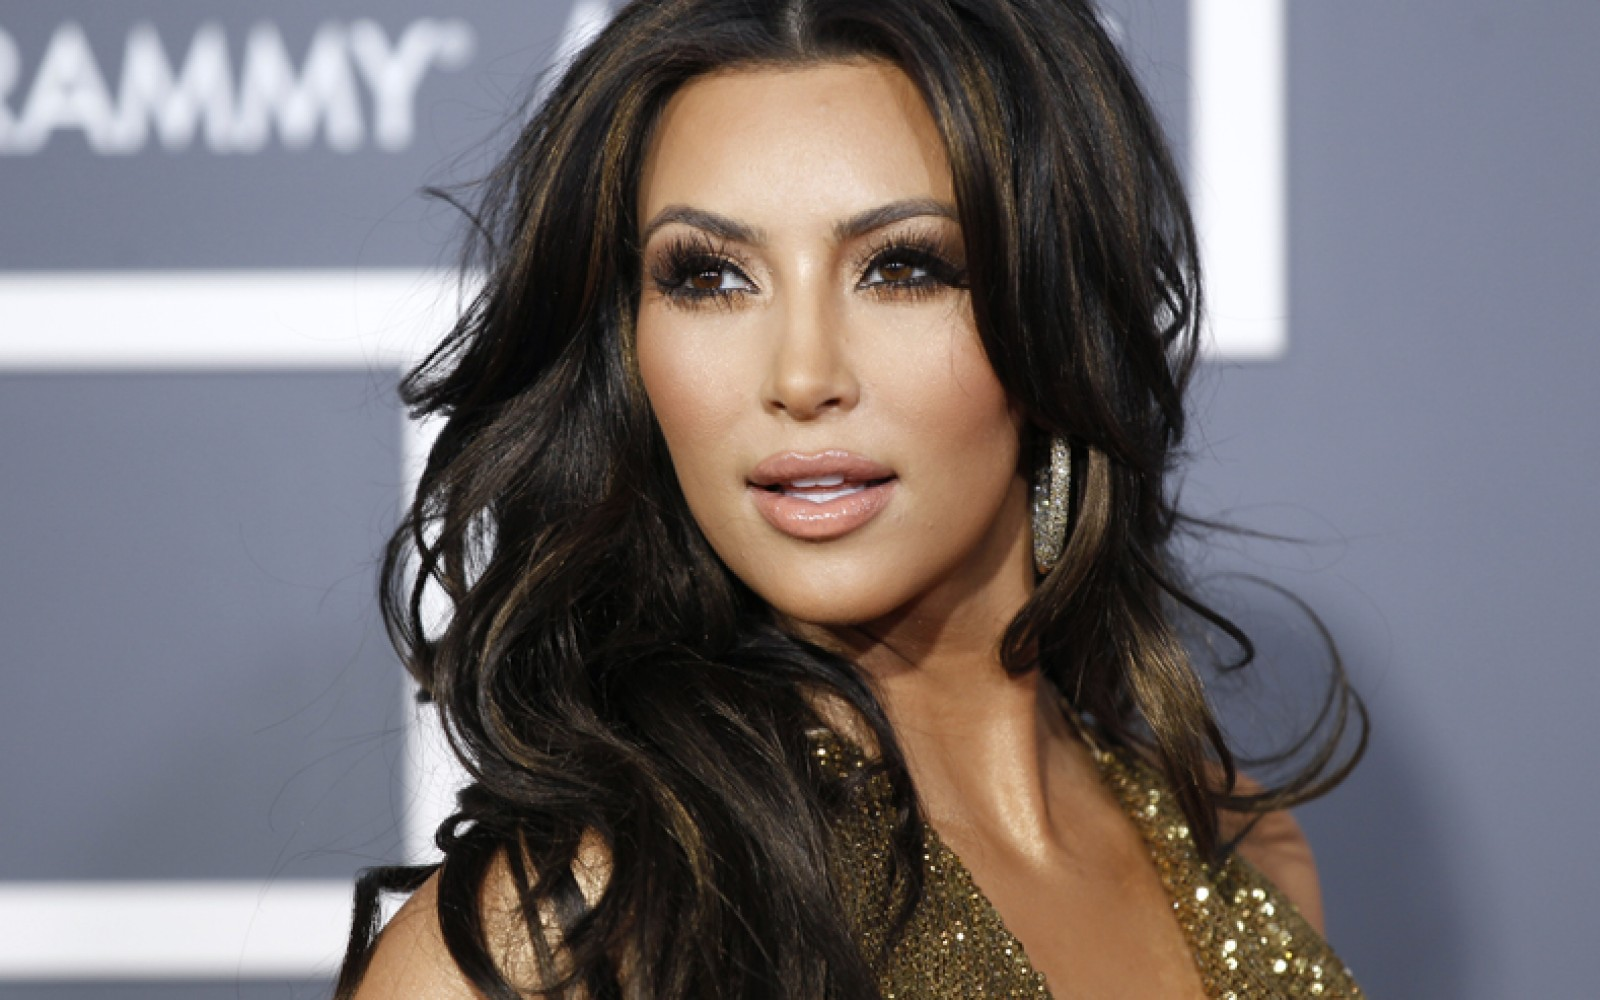 21 Kim Kardashian Quotes That Will Make Even Her Haters Respect Her